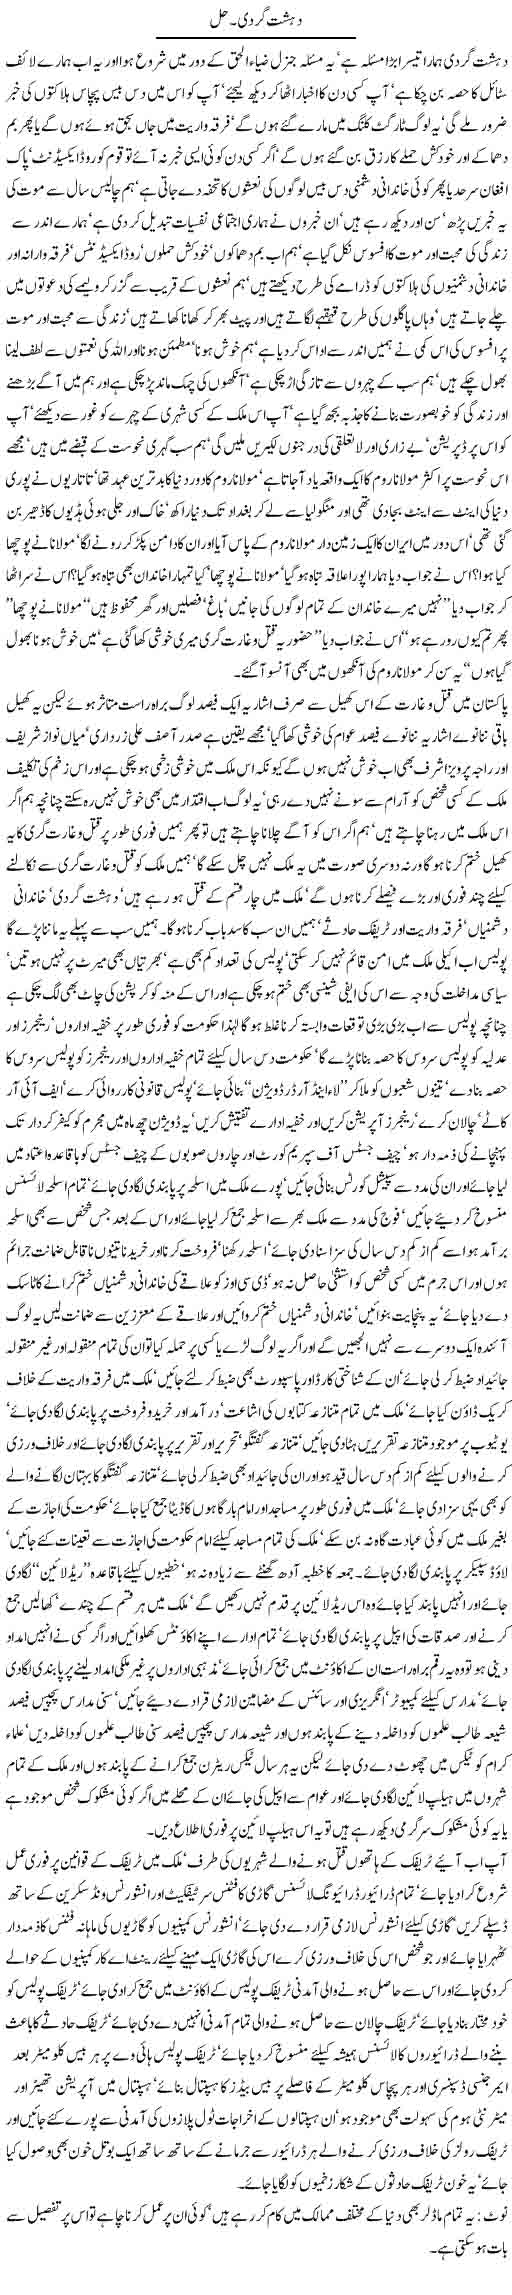 urdu point essay tree plantation or green essay in english for  urdu essay on terrorism in dehshat gardi column by javed urdu essay on terrorism in dehshat